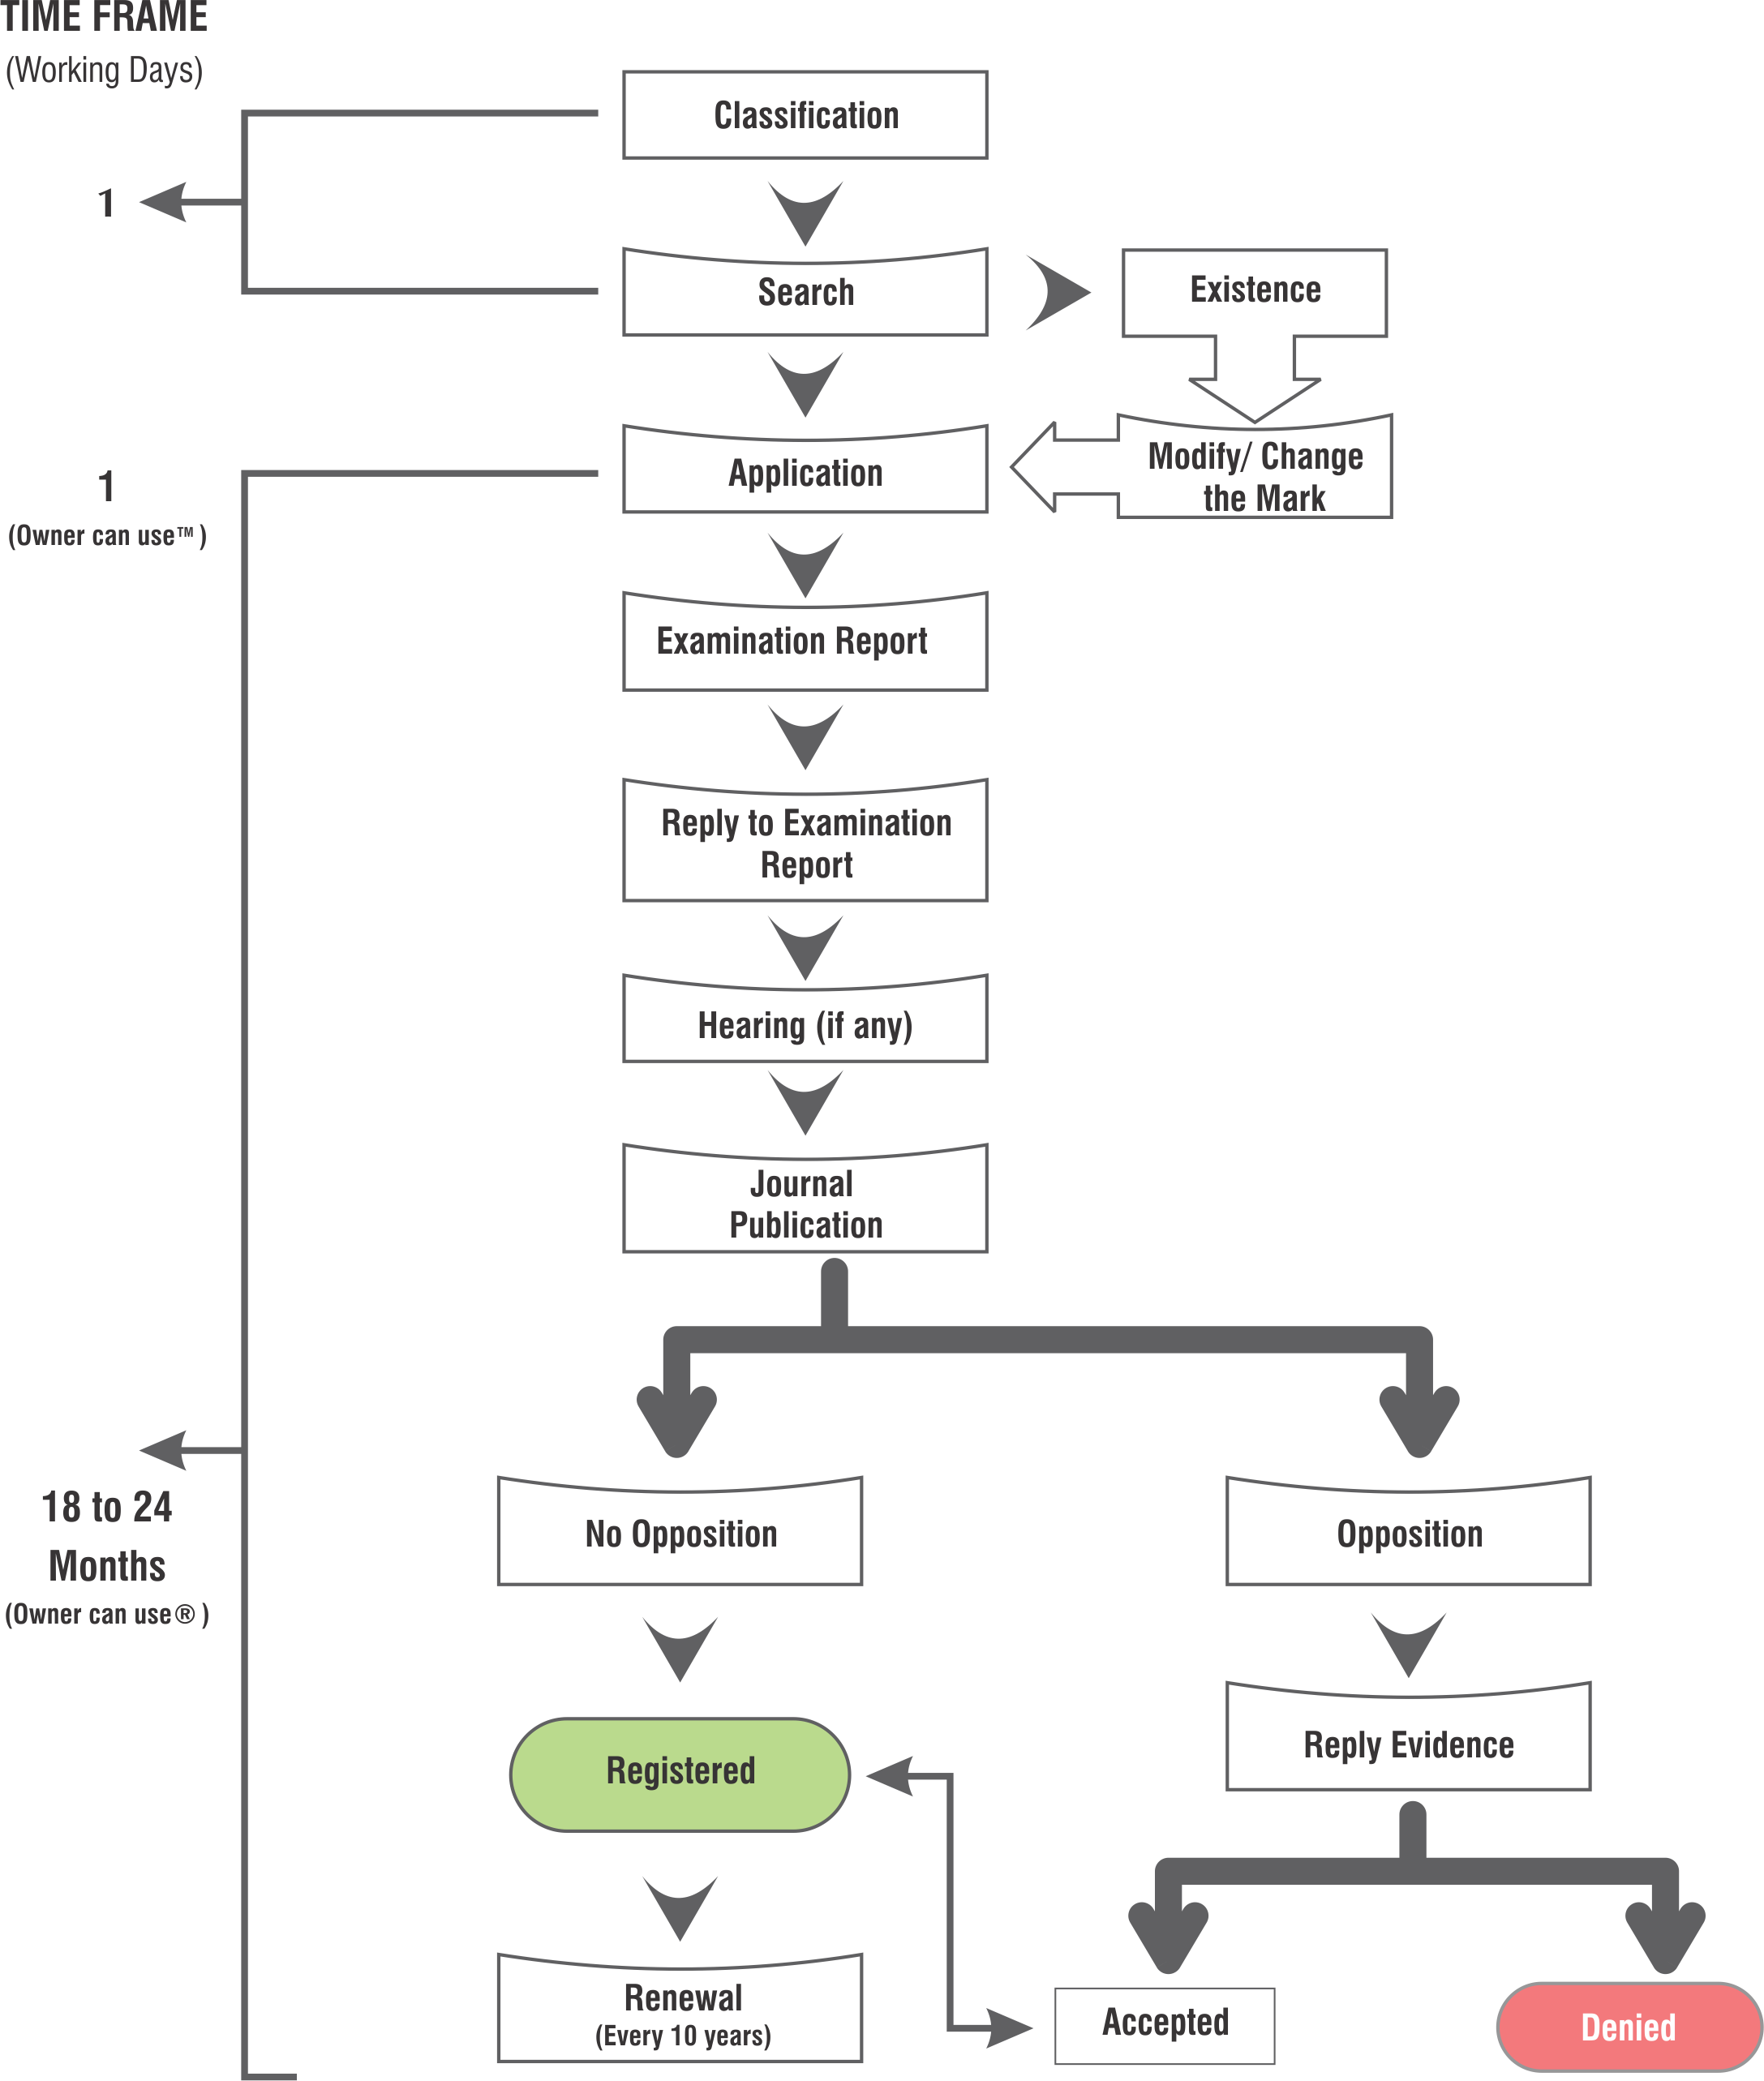 Trademark application flow chart trademark registration flow chart flow chart for trademark registration in india geenschuldenfo Image collections